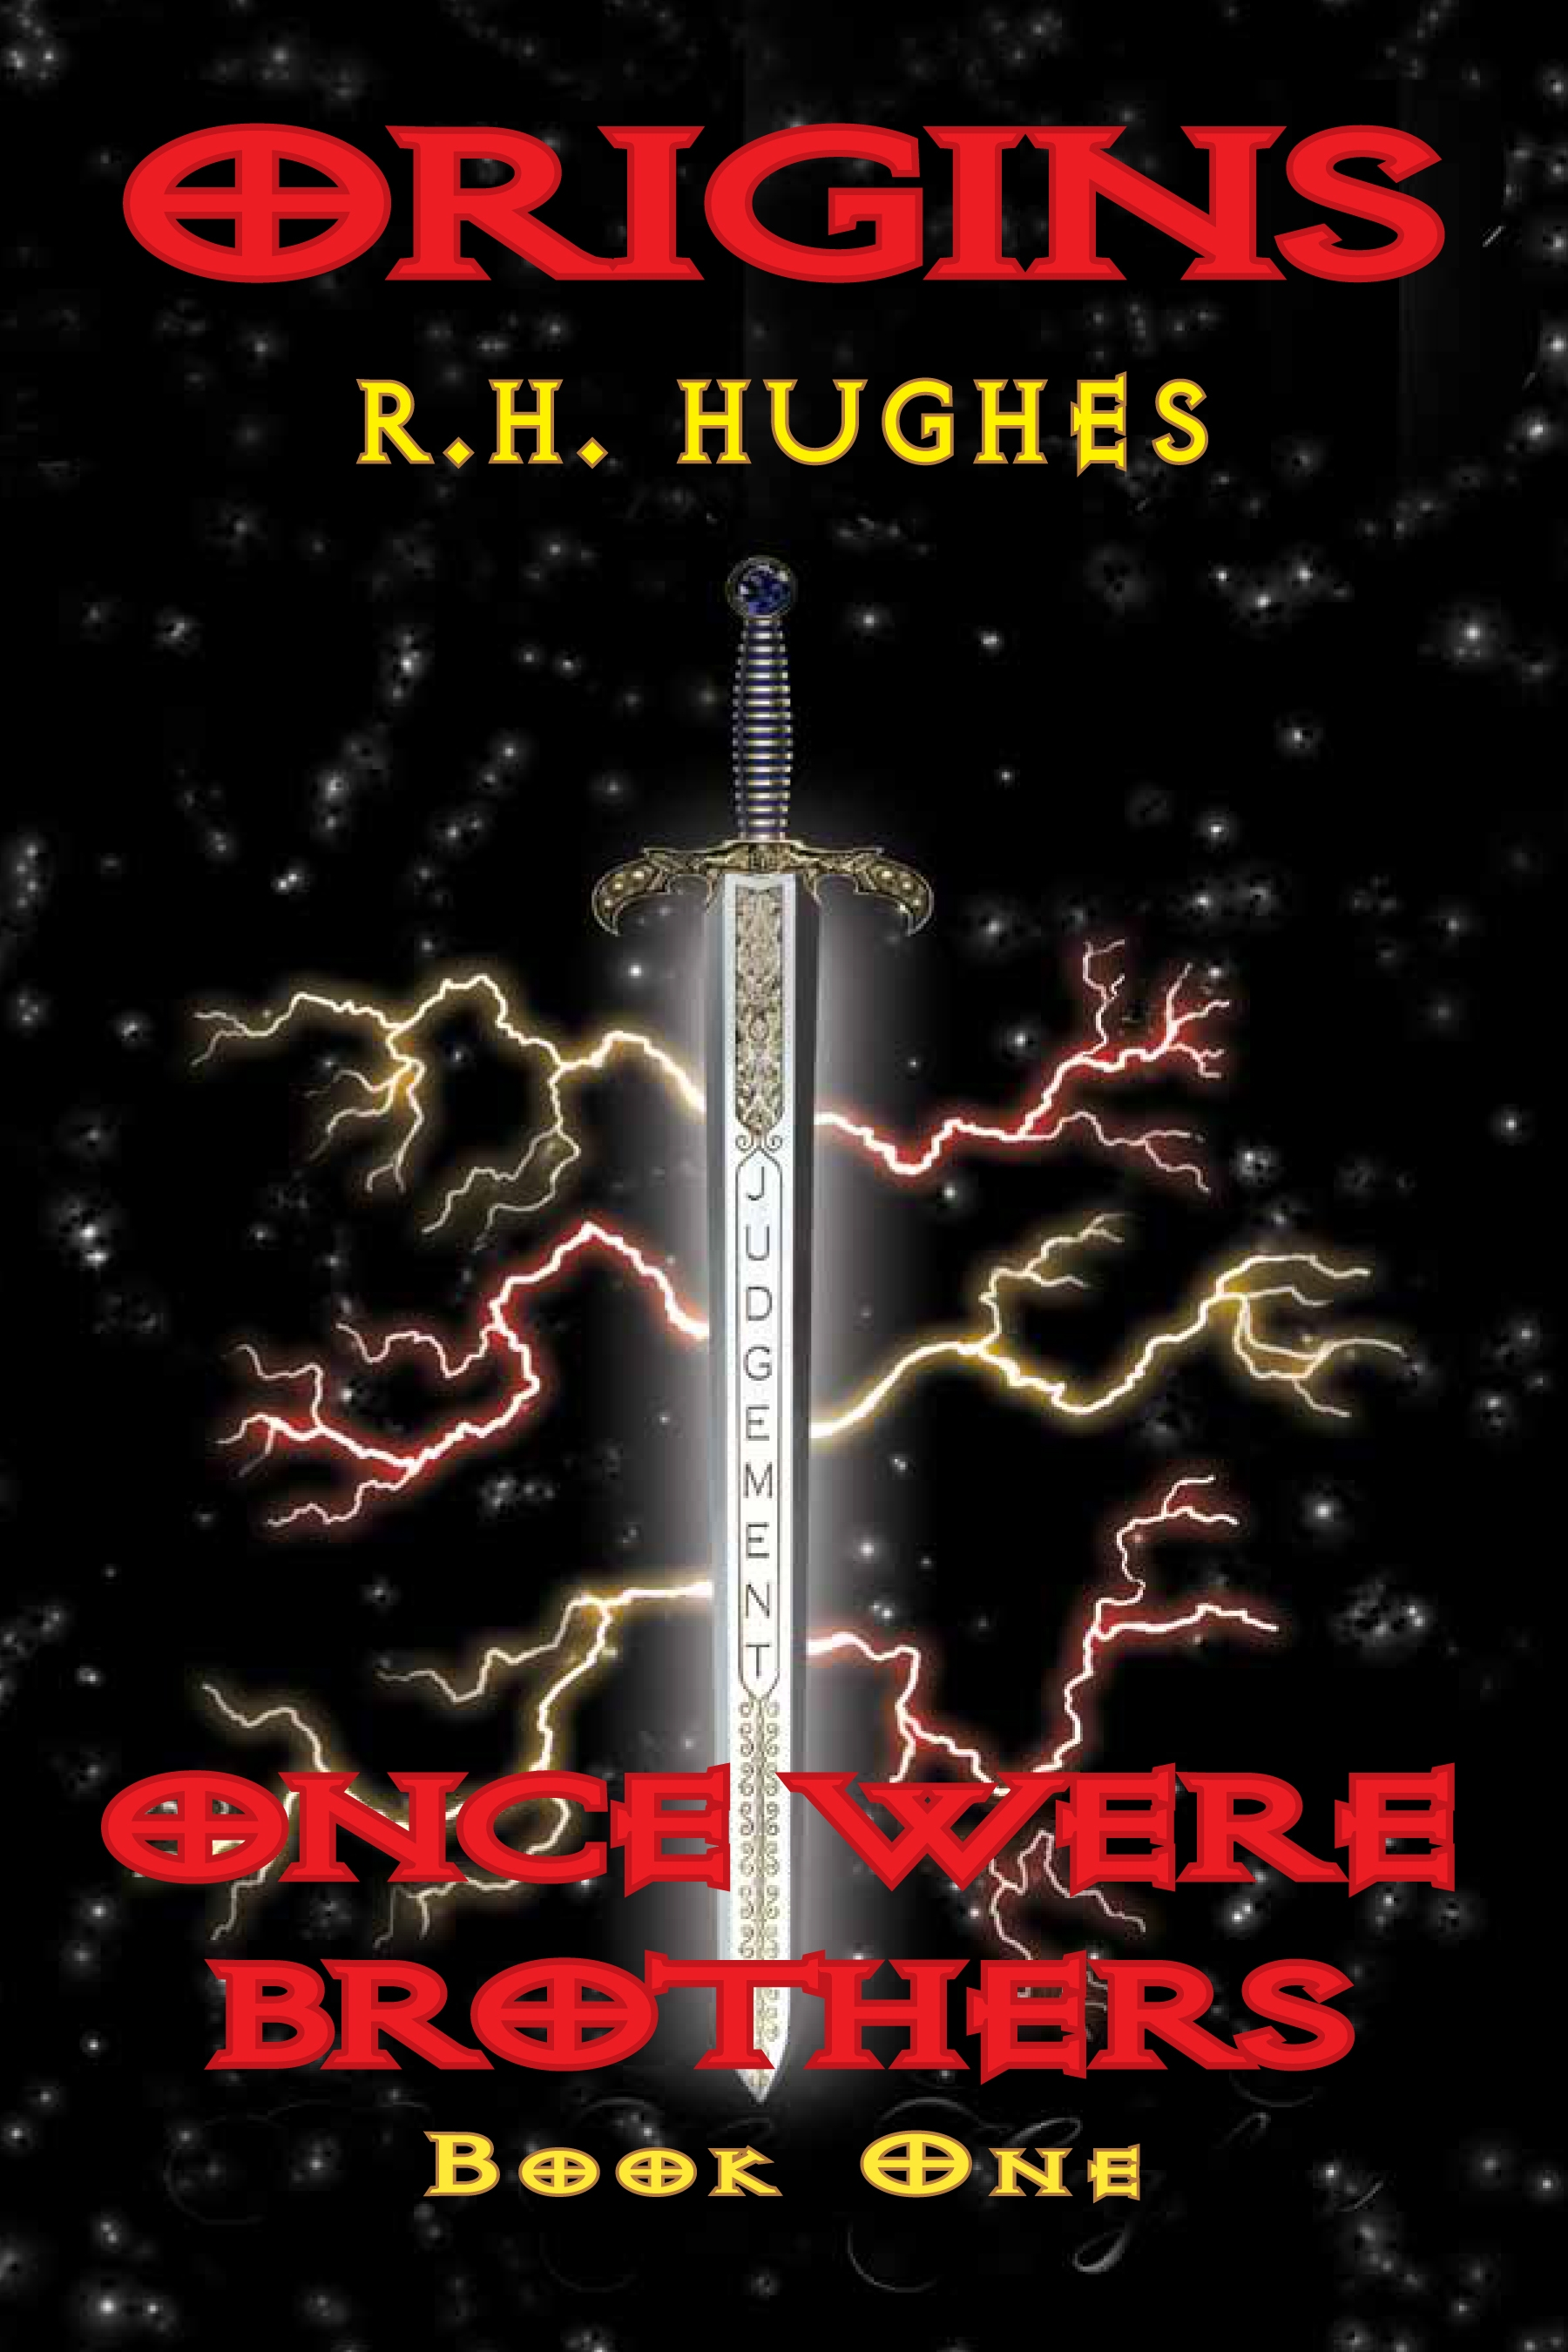 http://www.theindieview.com/wp-content/uploads/2013/01/Once-were-brothers-cover.jpg